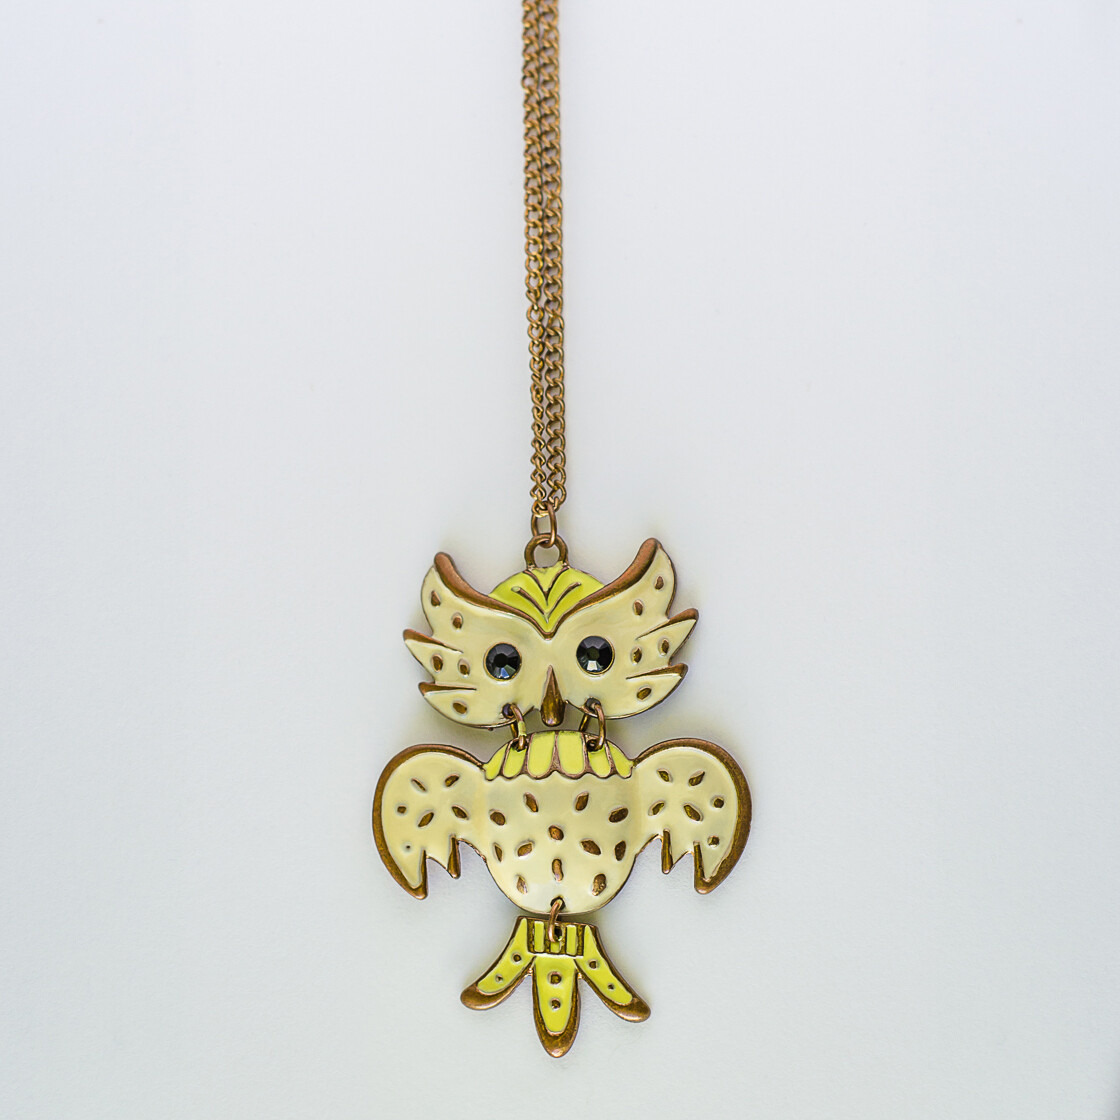 Cute Owl Necklace - BLACKDOLL ACCESSORIES